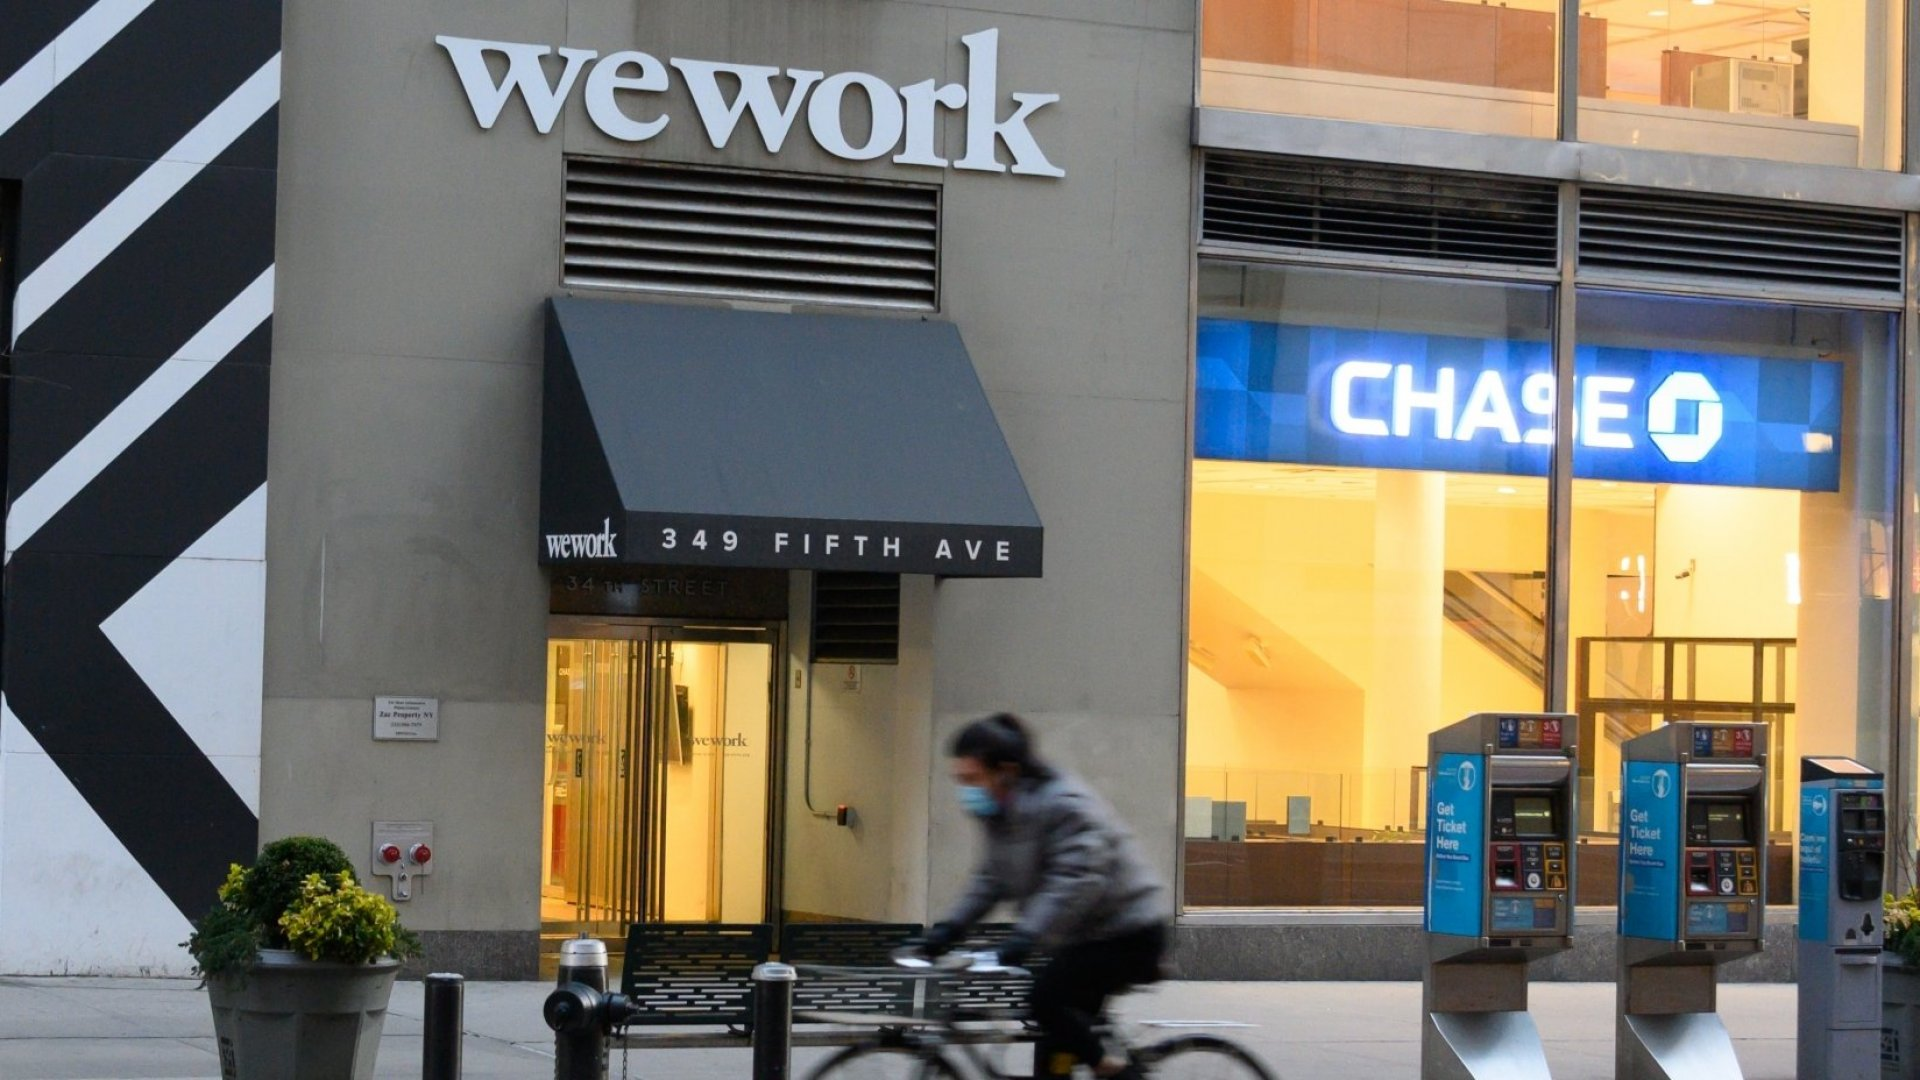 WeWork Offers Employees $100 a Day Bonus to Work In Its Locations. But Should They?